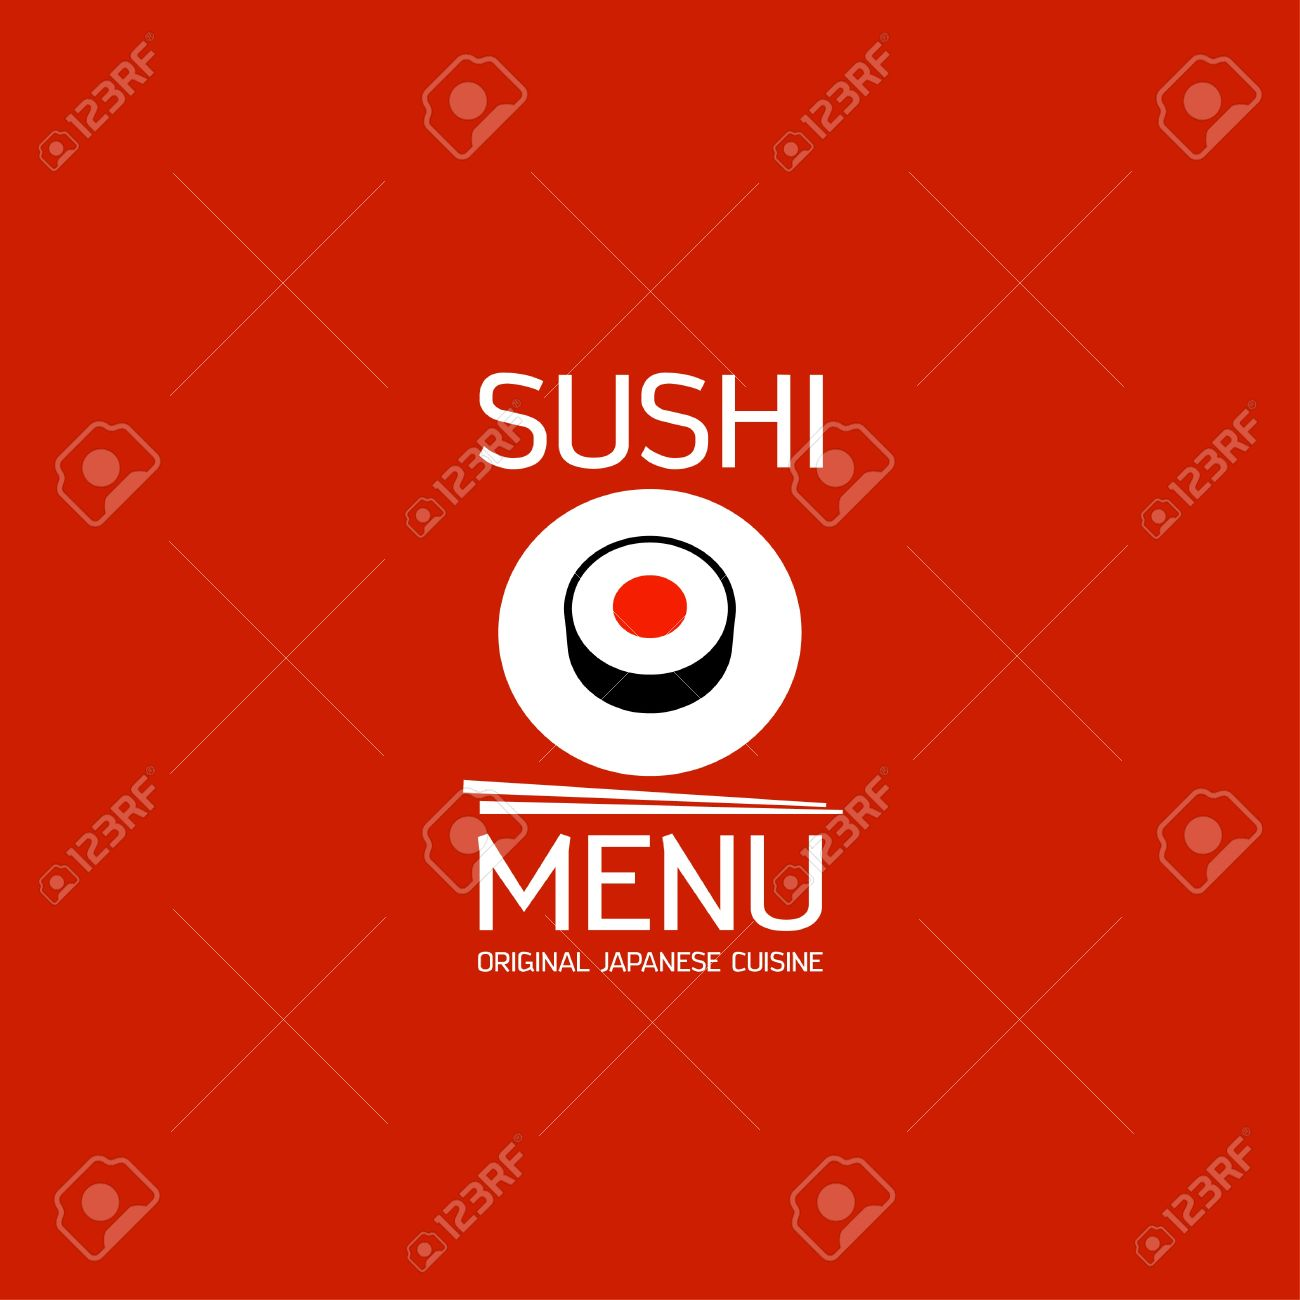 Sushi menu card design template Stock Vector - 18167589